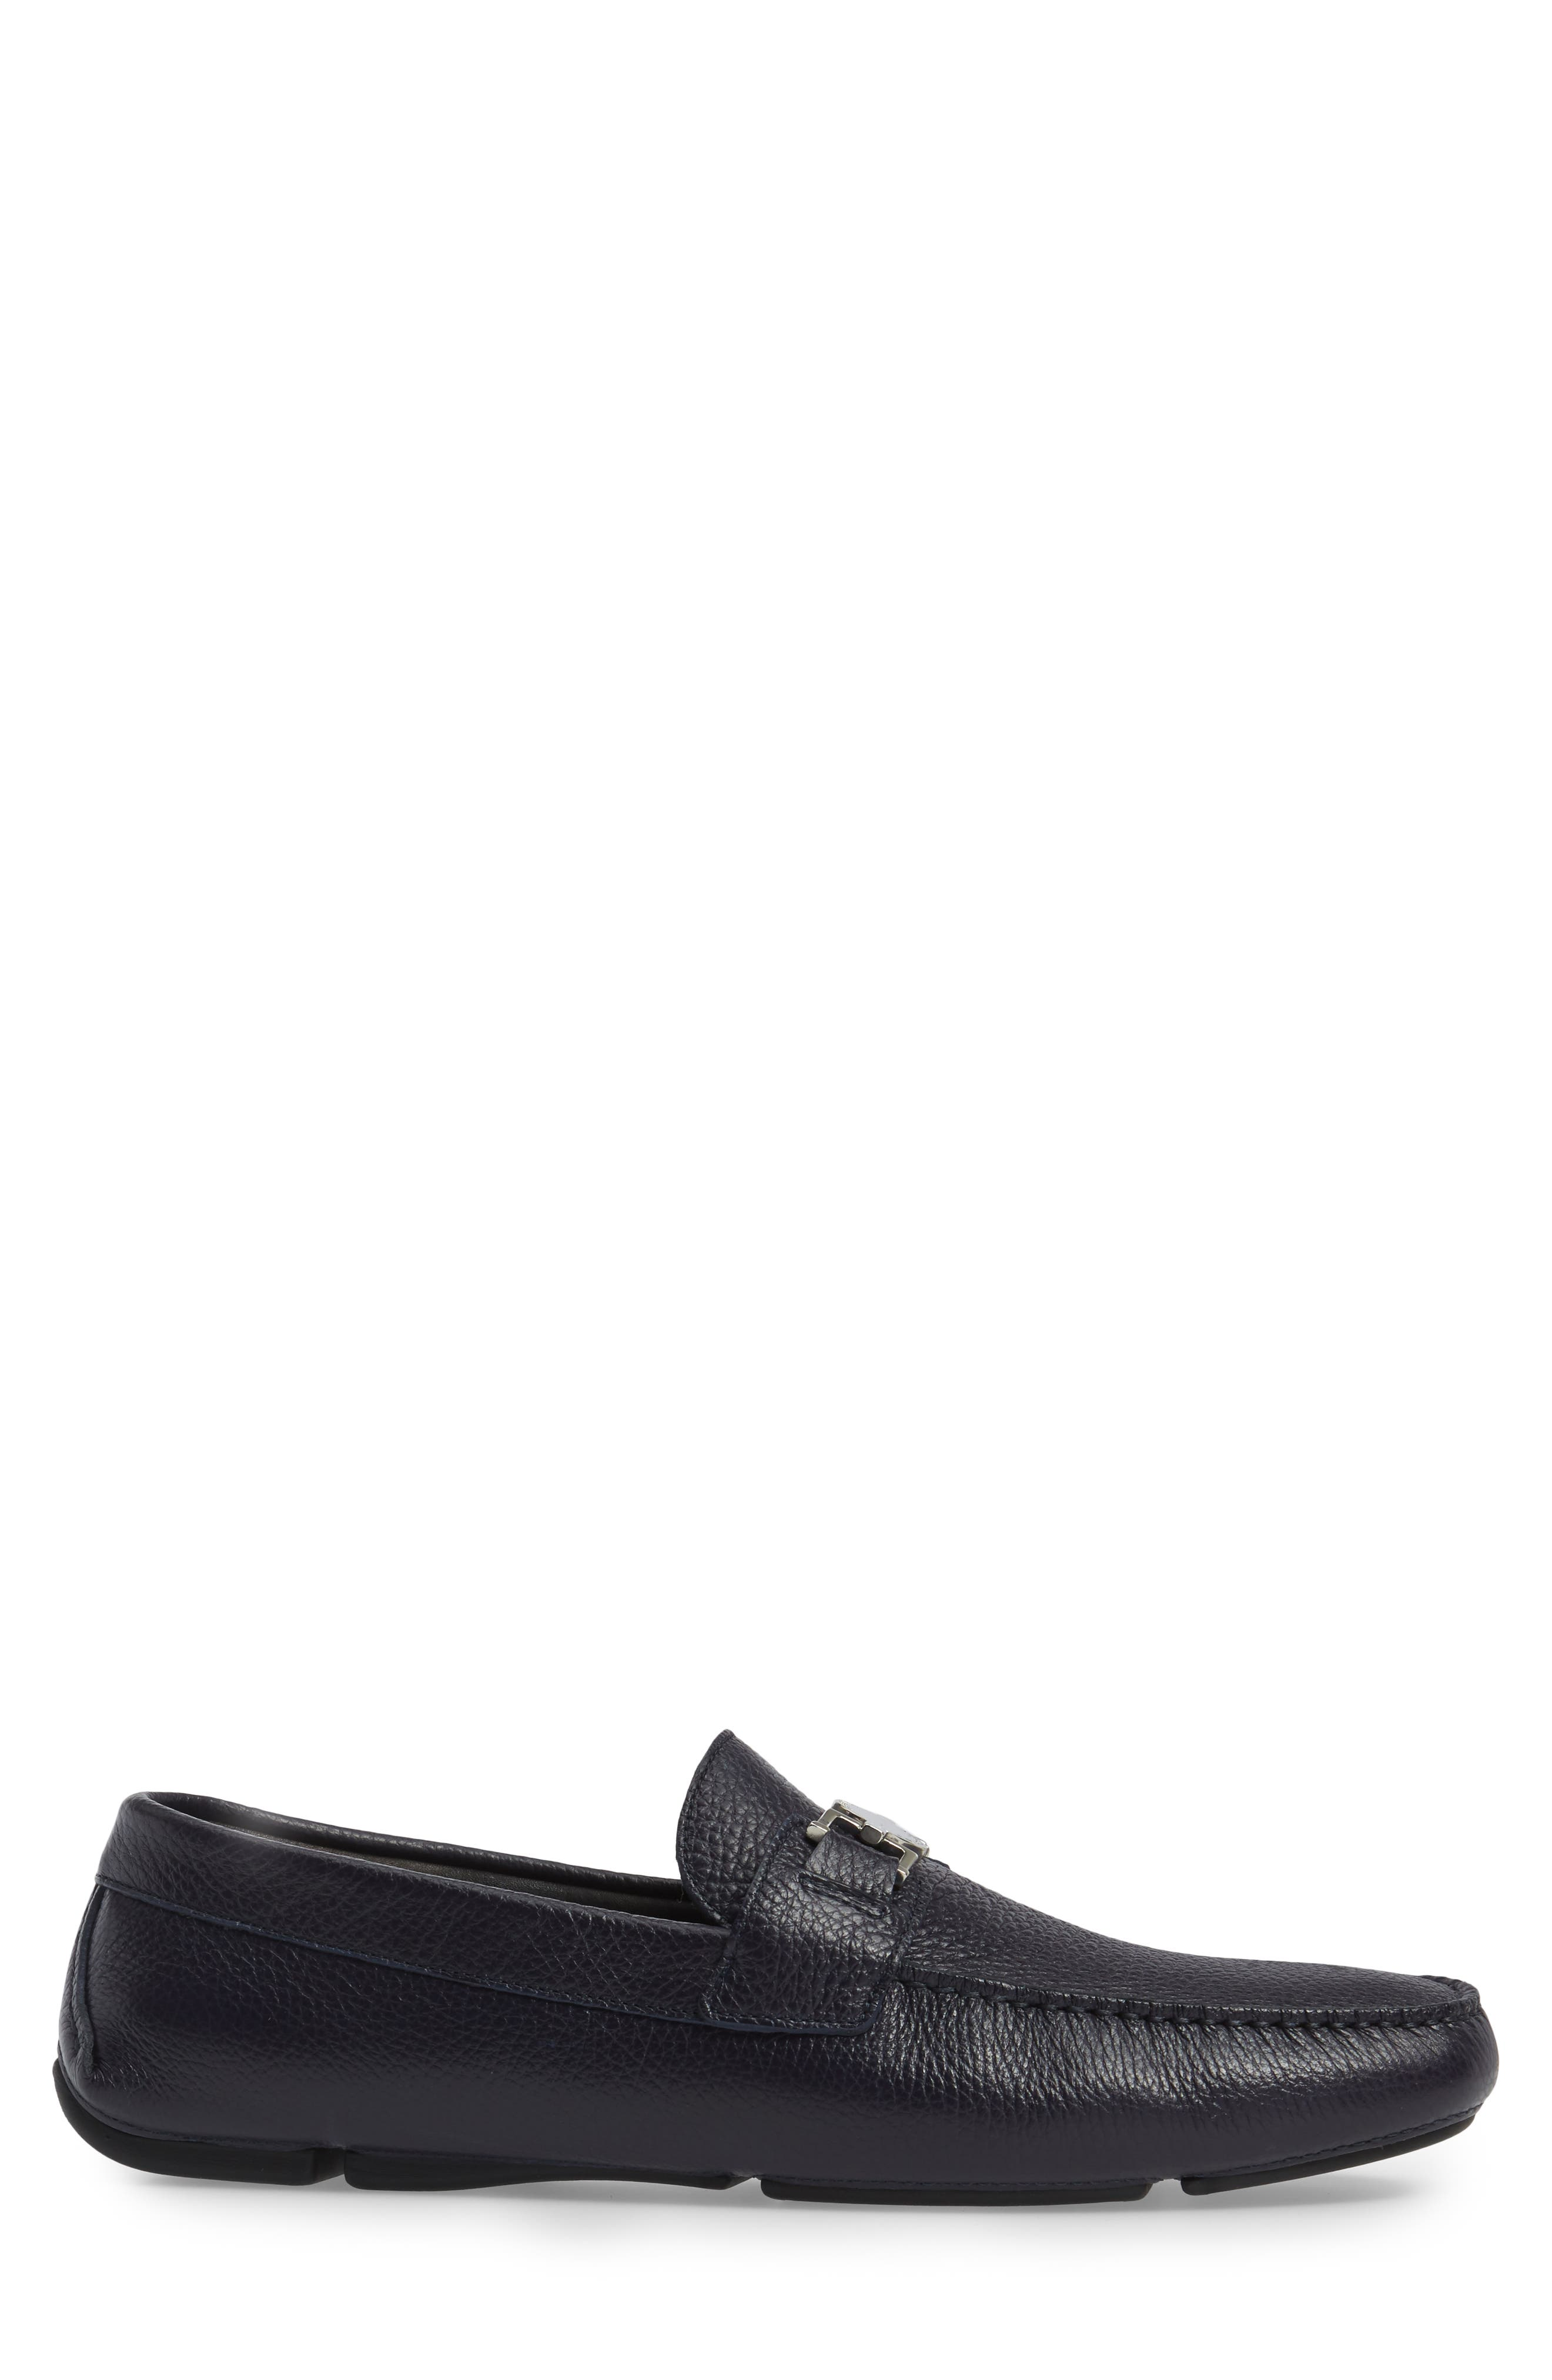 Alternate Image 3  - Versace Driving Shoe (Men)